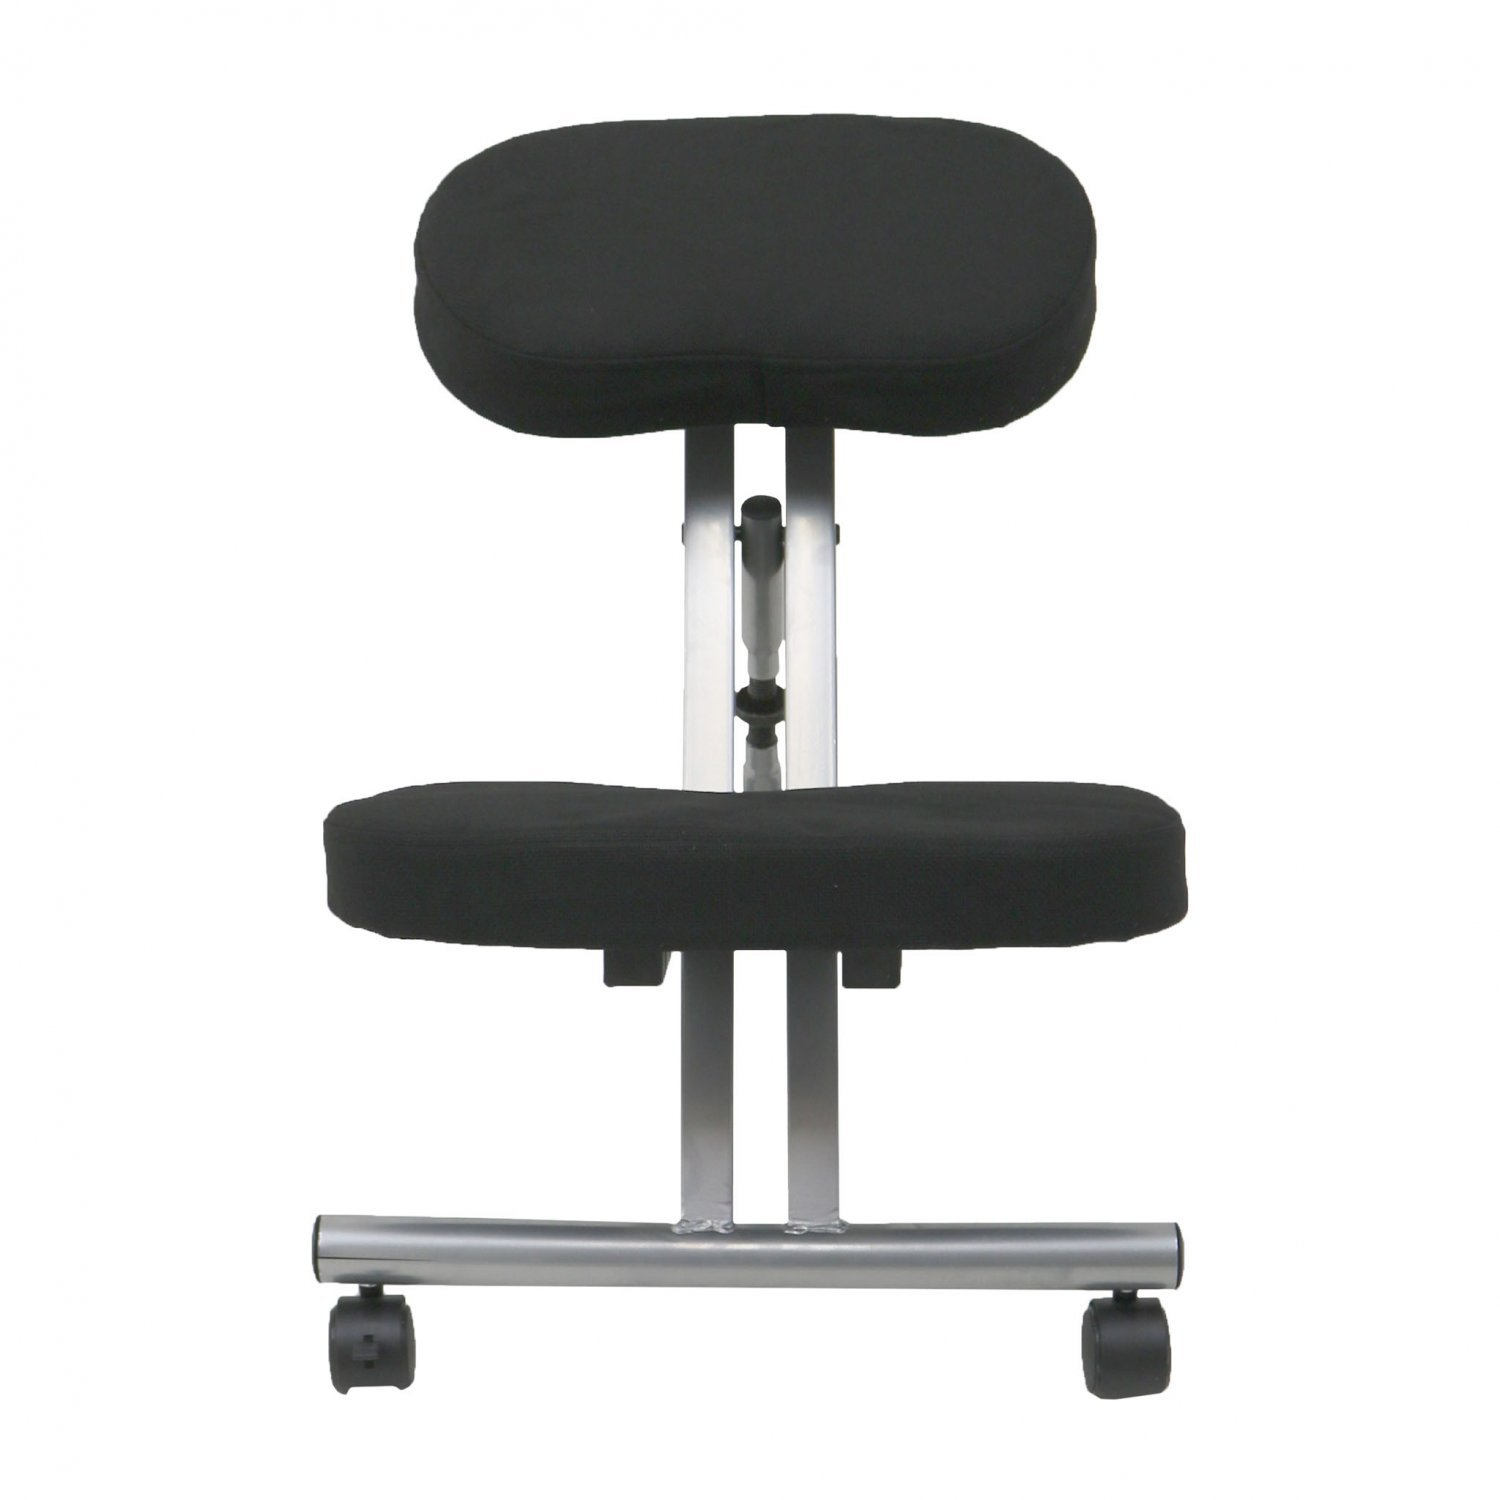 ergonomic chair posture shiatsu massage recliner kneeling orthopaedic office stool